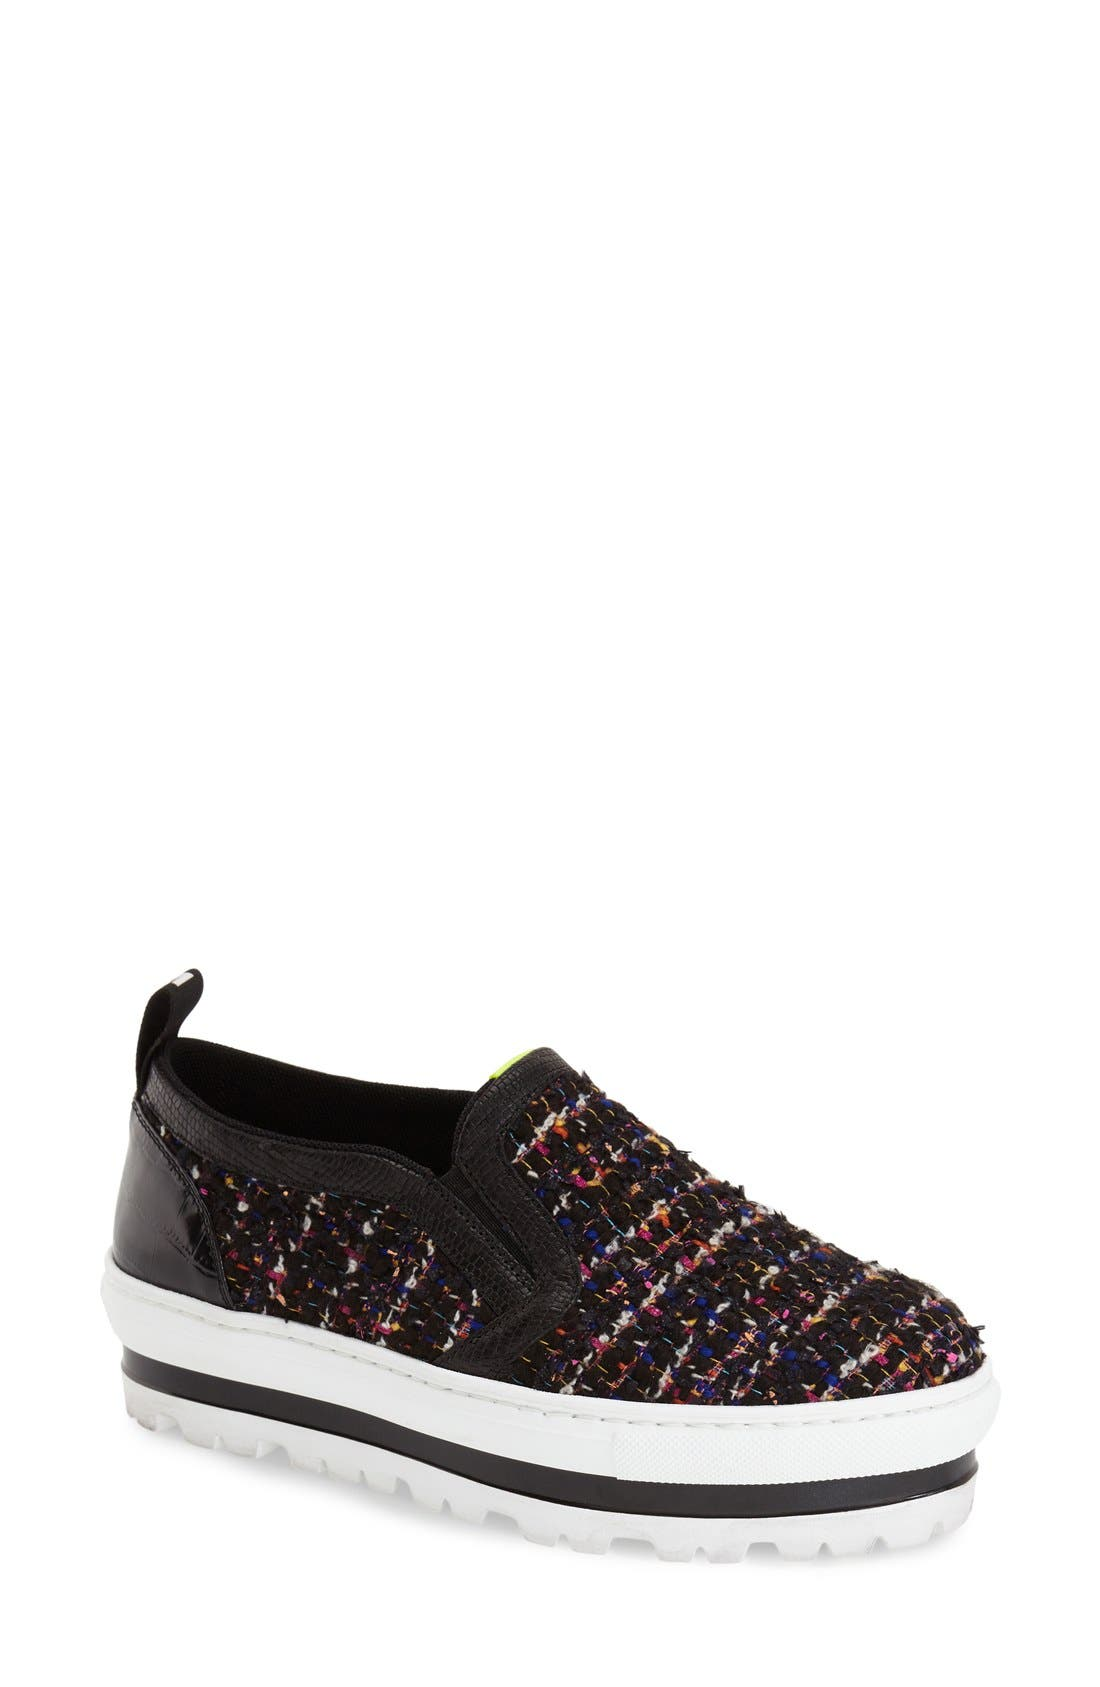 Main Image - MSGM Tweed Platform Slip-On Sneaker (Women)